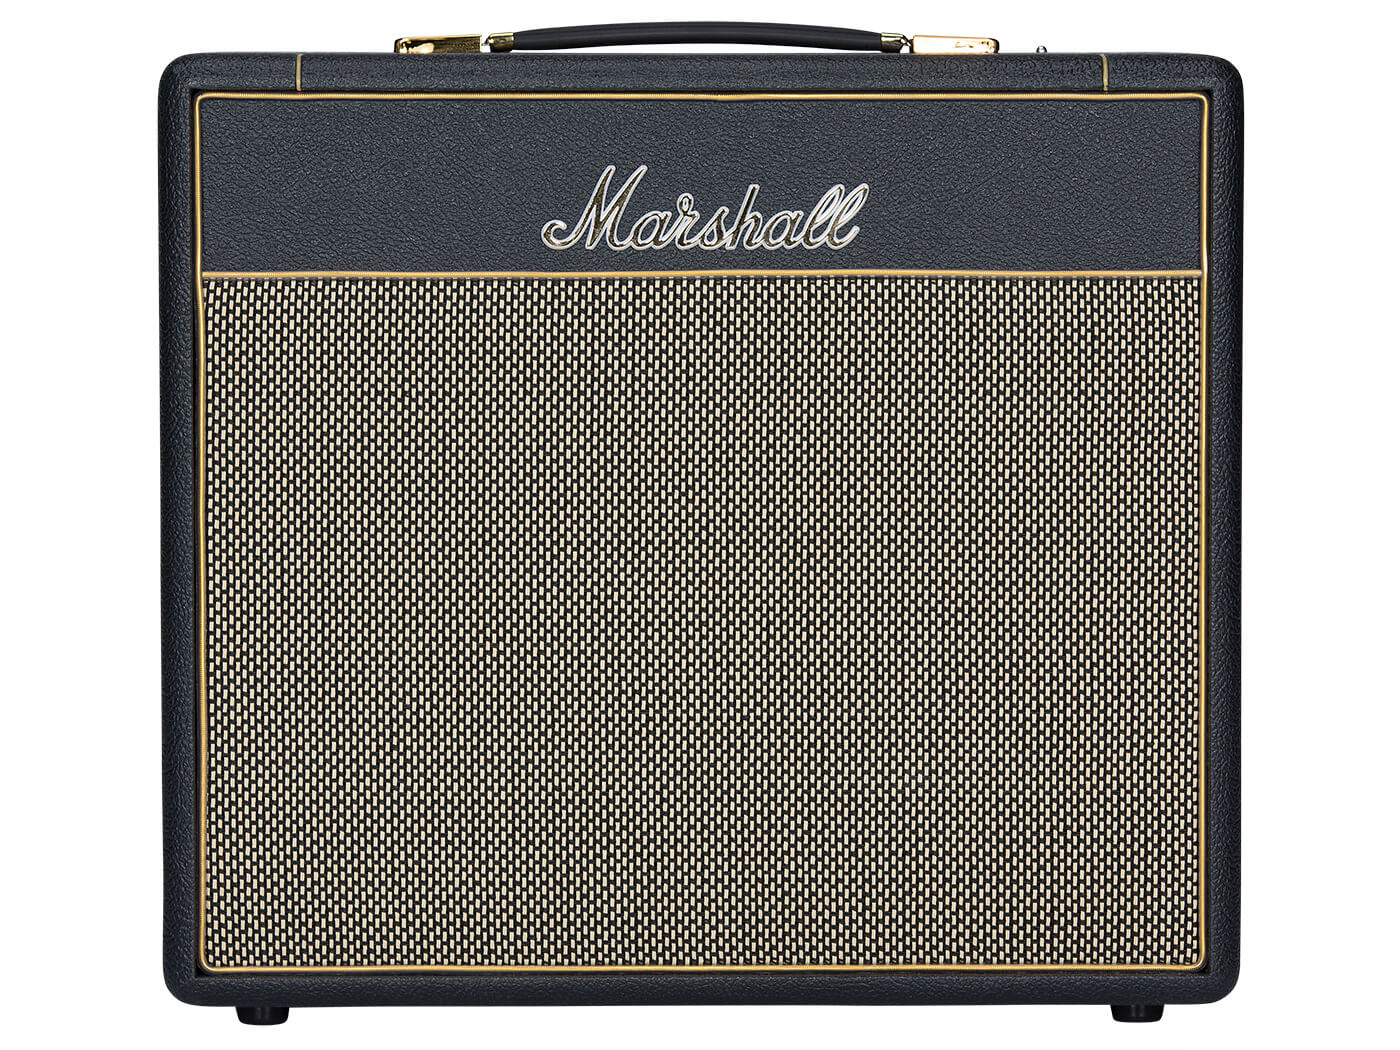 The Marshall Studio Vintage Combo